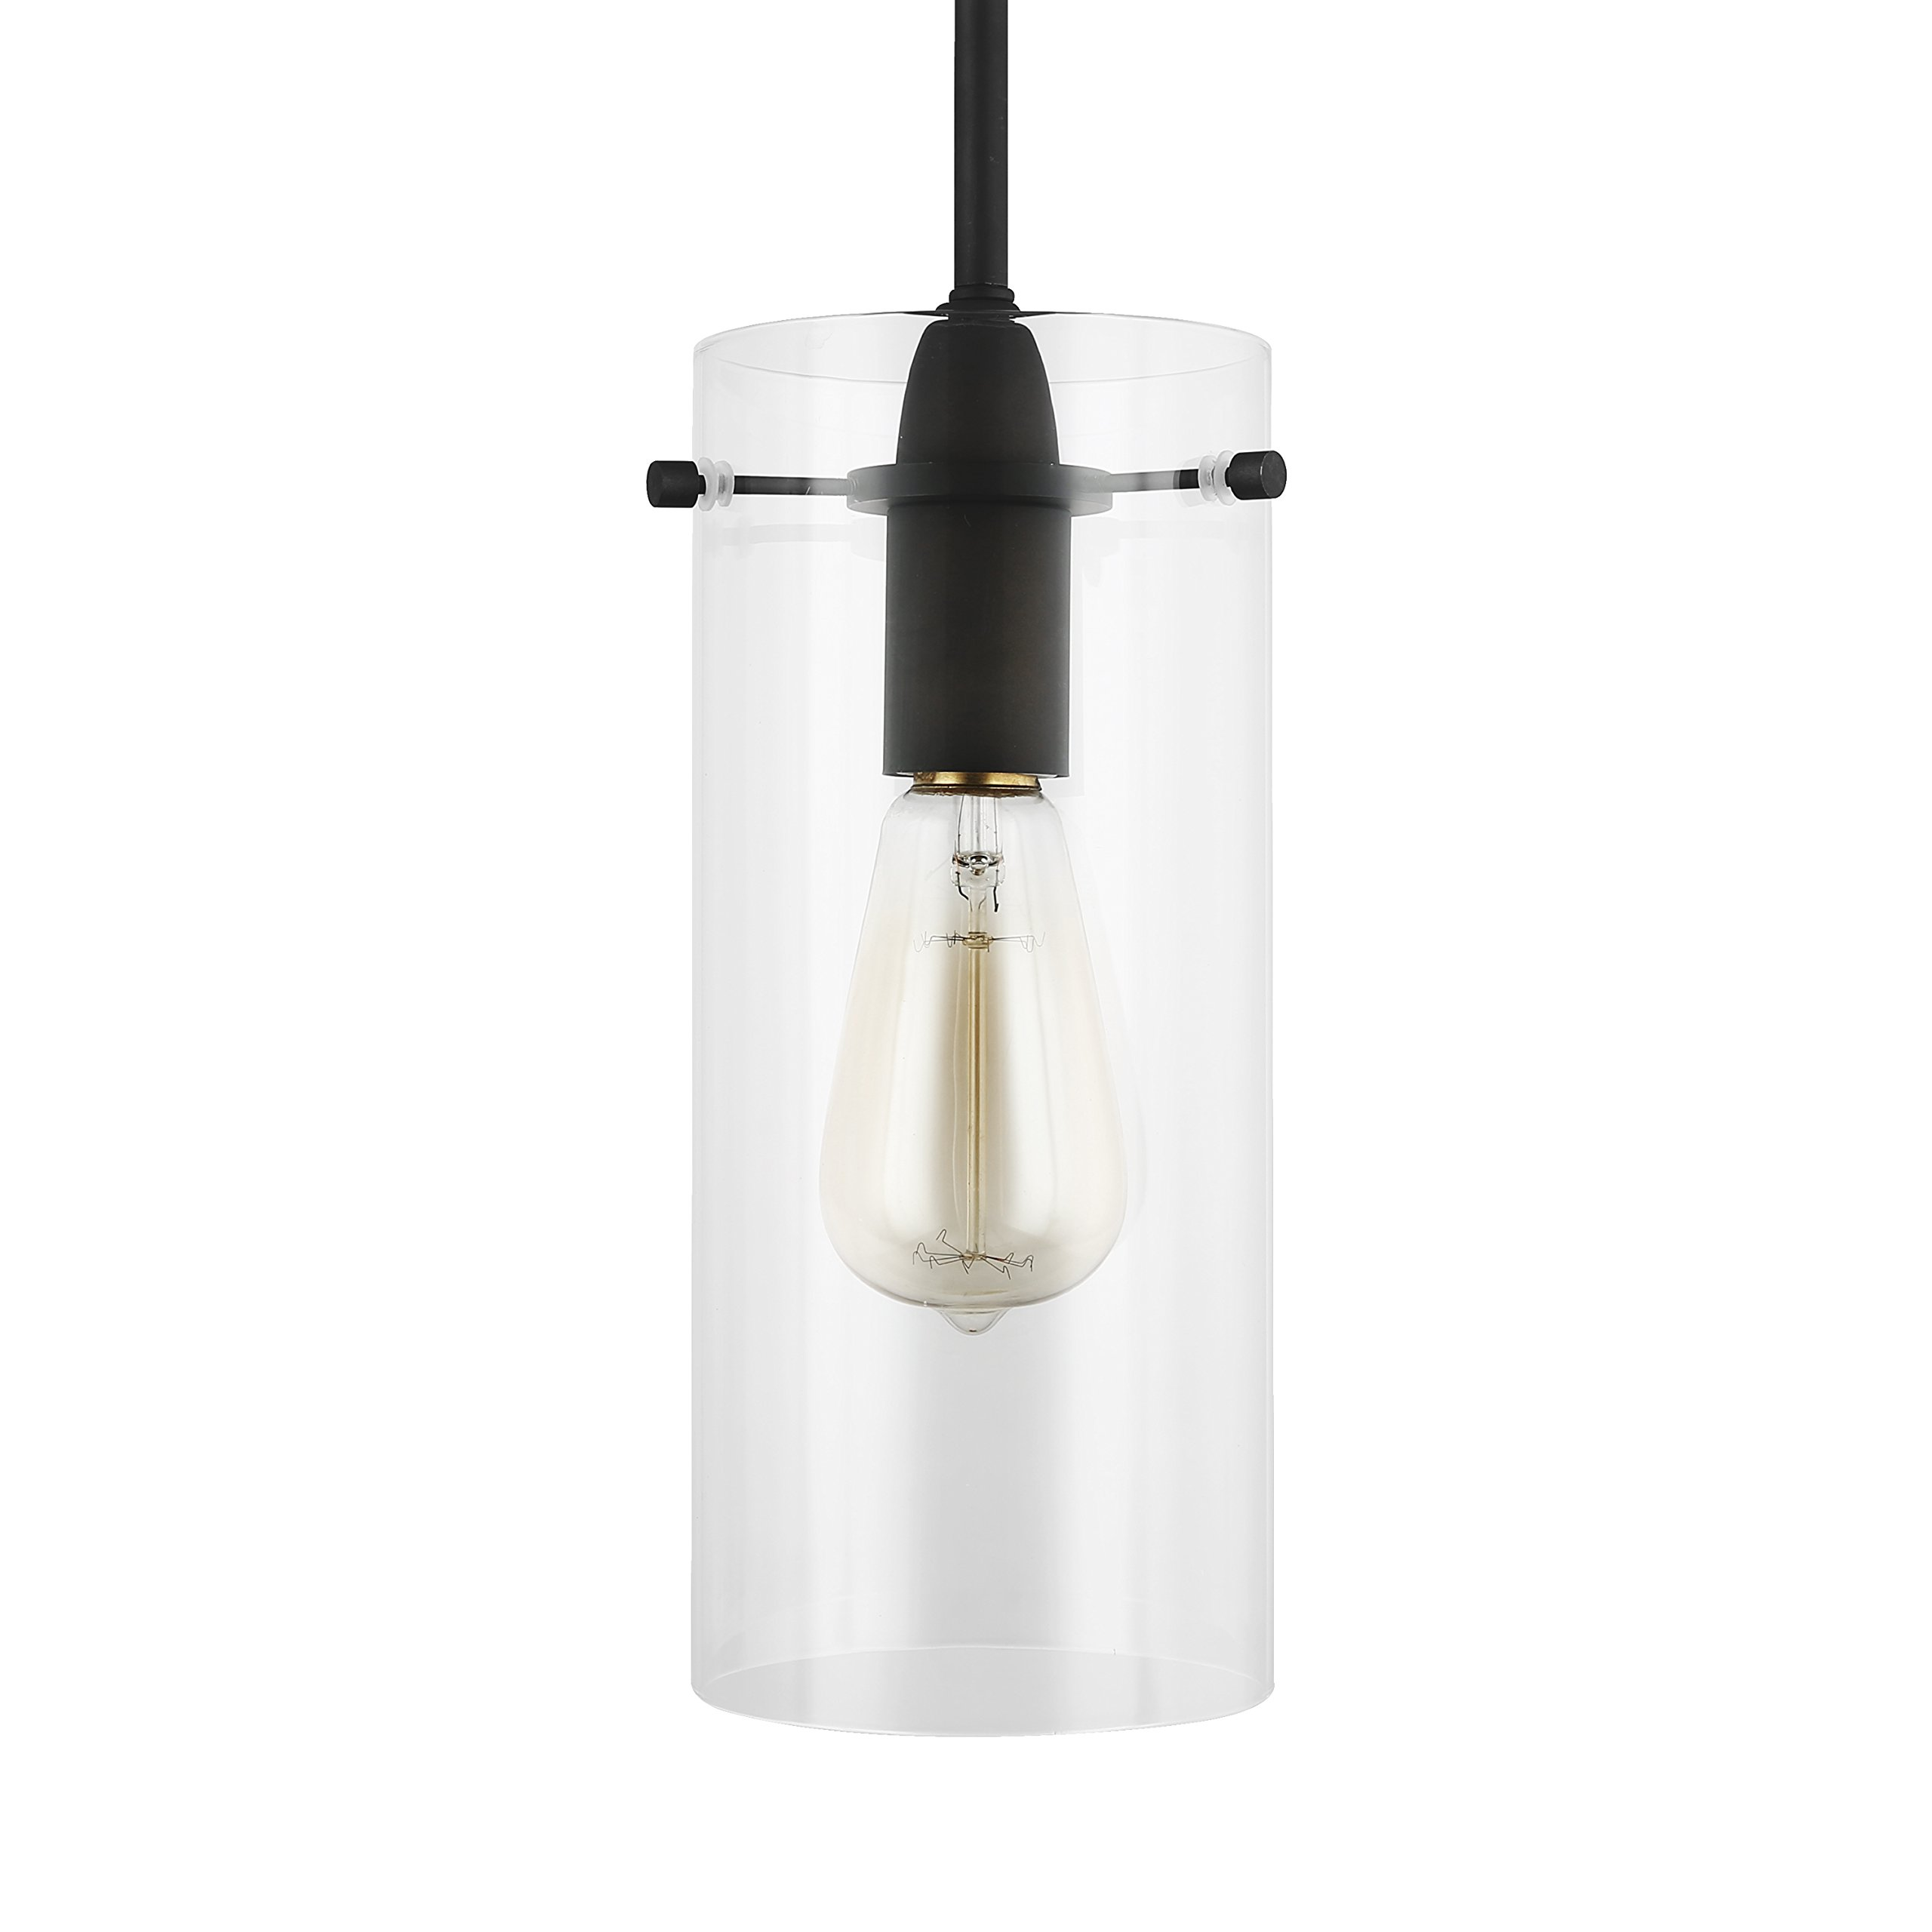 Light Society Montreal Cylindrical Pendant Light, Oil Rubbed Bronze with Clear Glass Shade, Contemporary Minimalist Modern Lighting Fixture (LS-C237-ORB-CL)